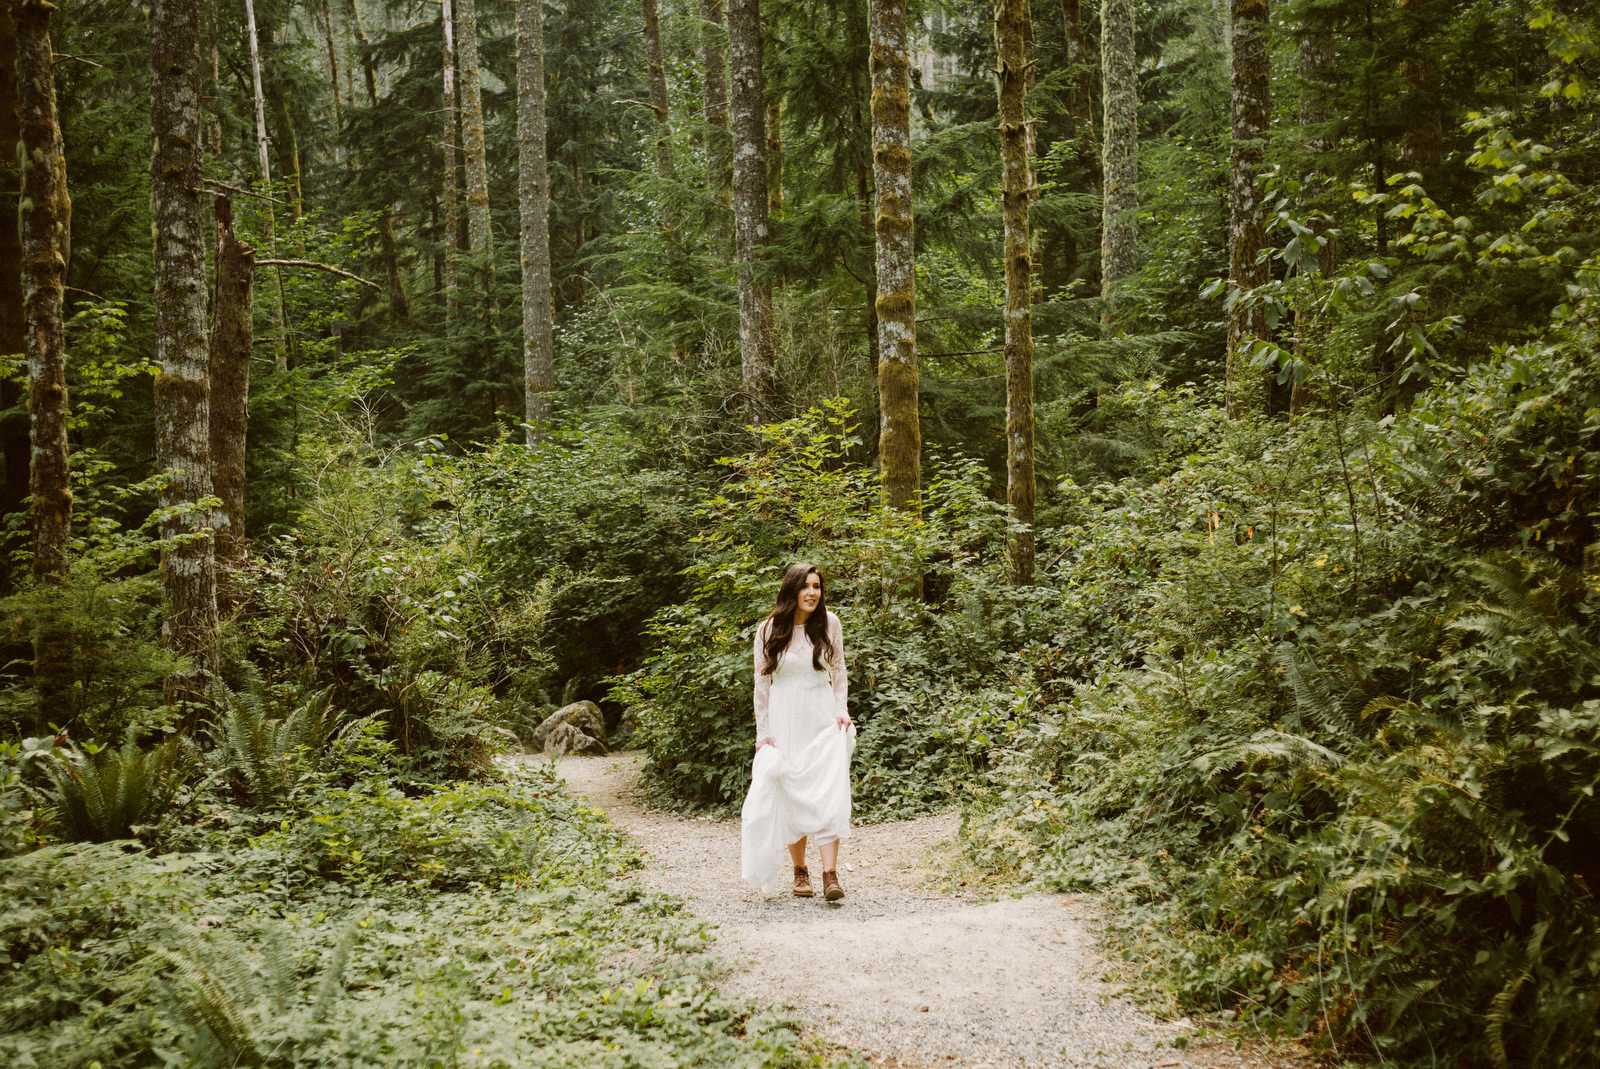 athena-and-camron-seattle-elopement-wedding-benj-haisch-rattlesnake-lake-christian-couple-goals2